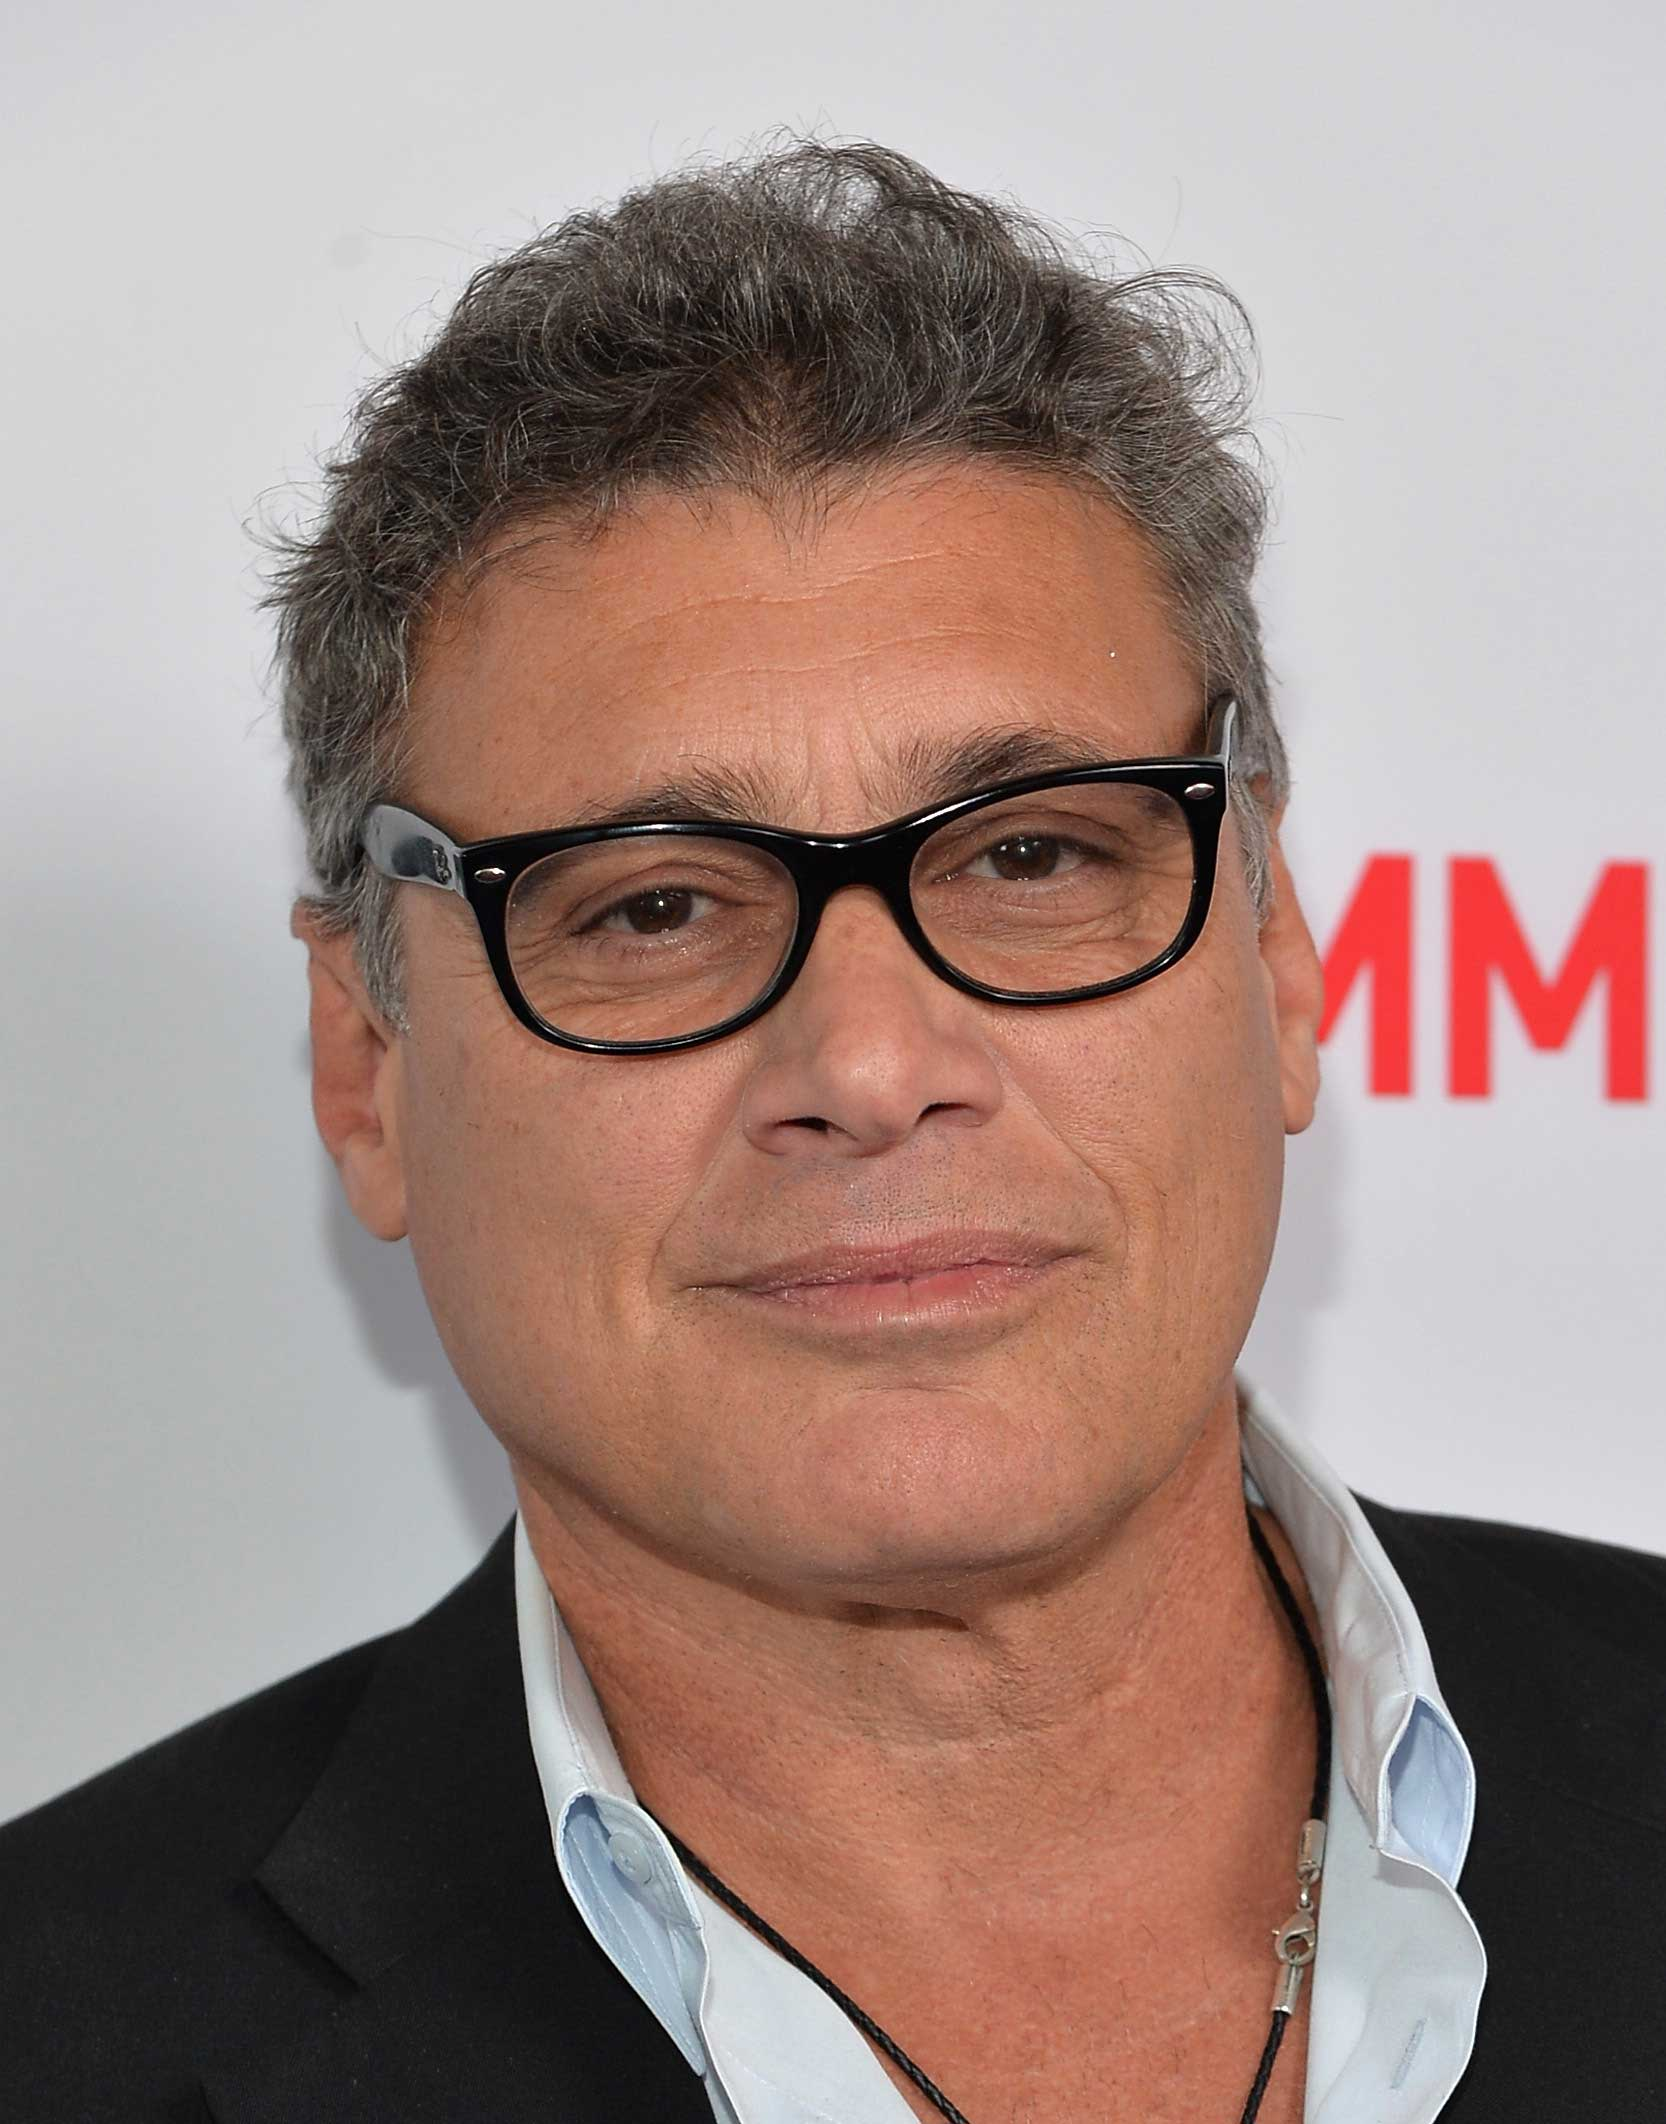 Actor Steven Bauer on April 28, 2014 in North Hollywood, California.